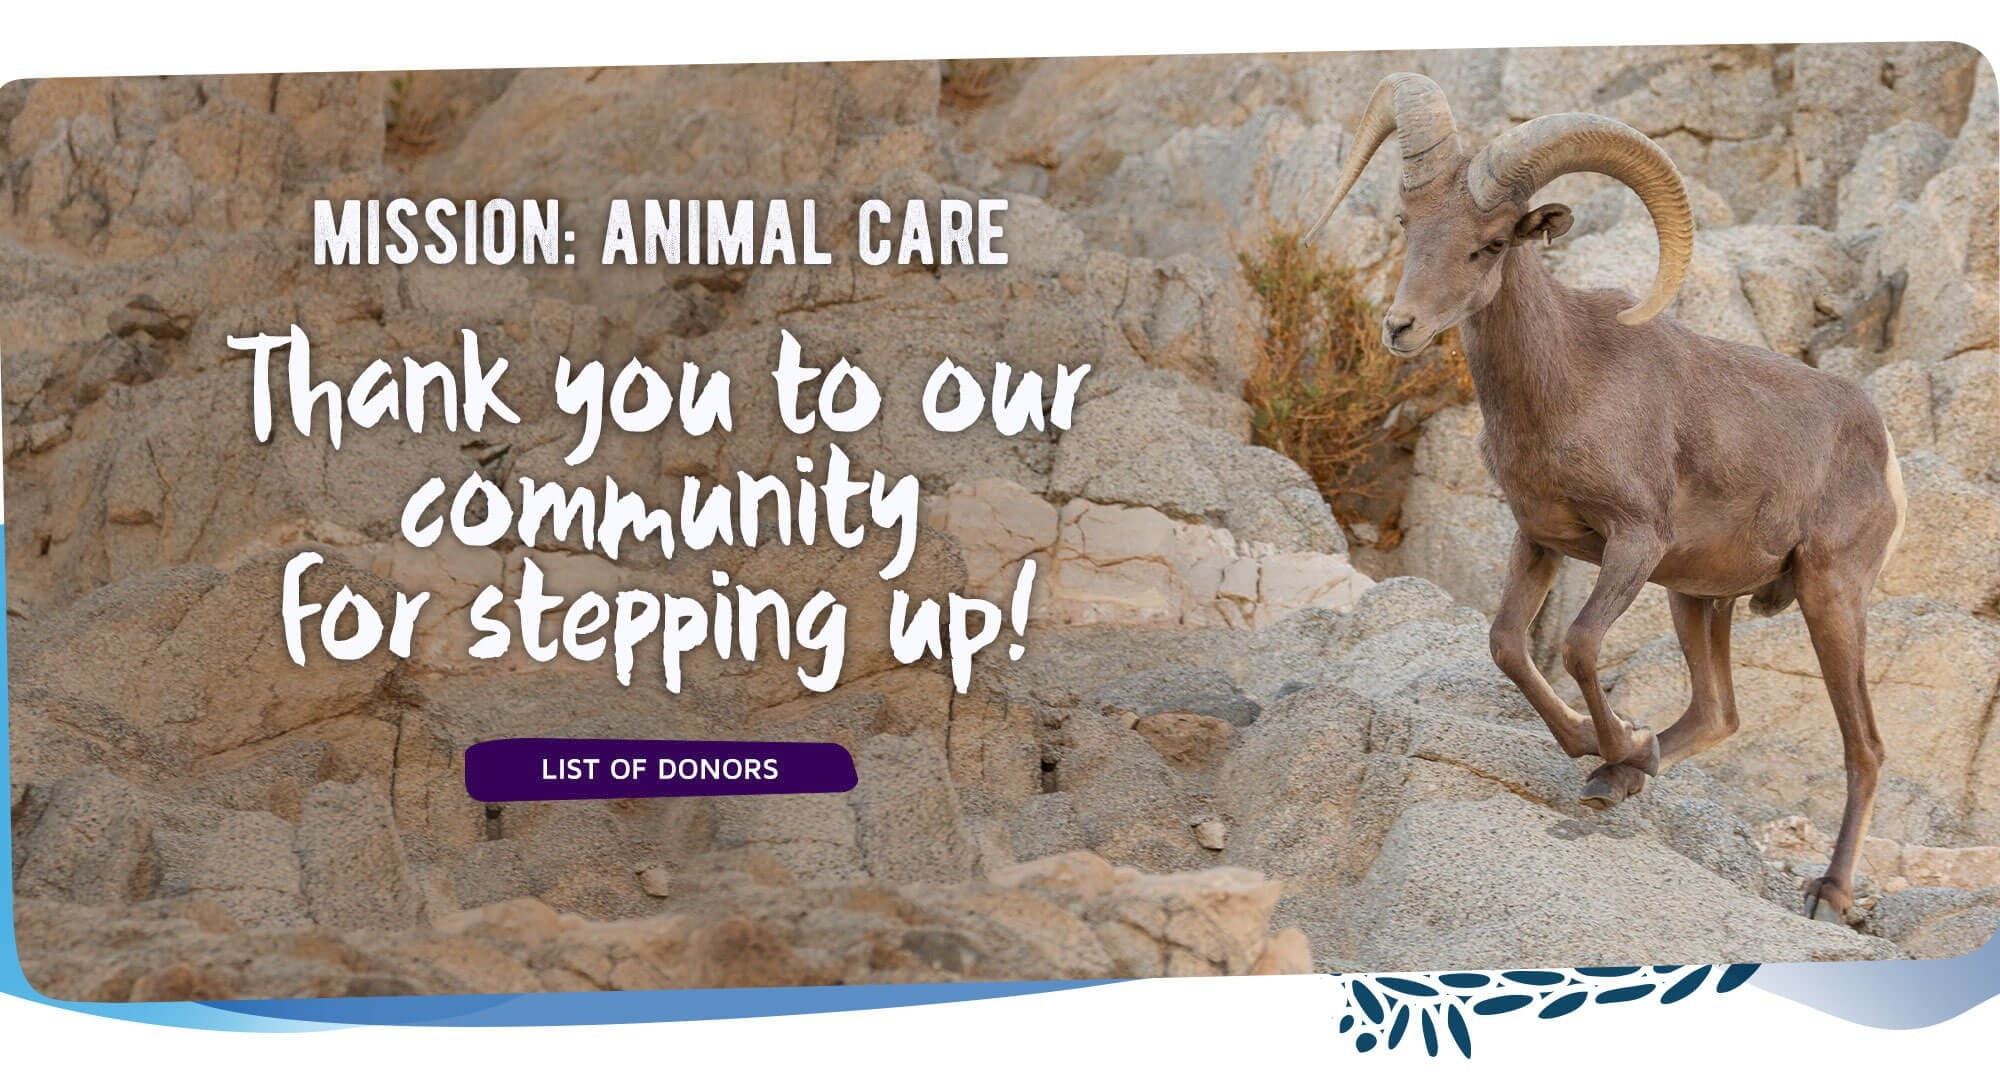 Mission: Animal Care - Thank you to our community for stepping up. Click to see list of donors.